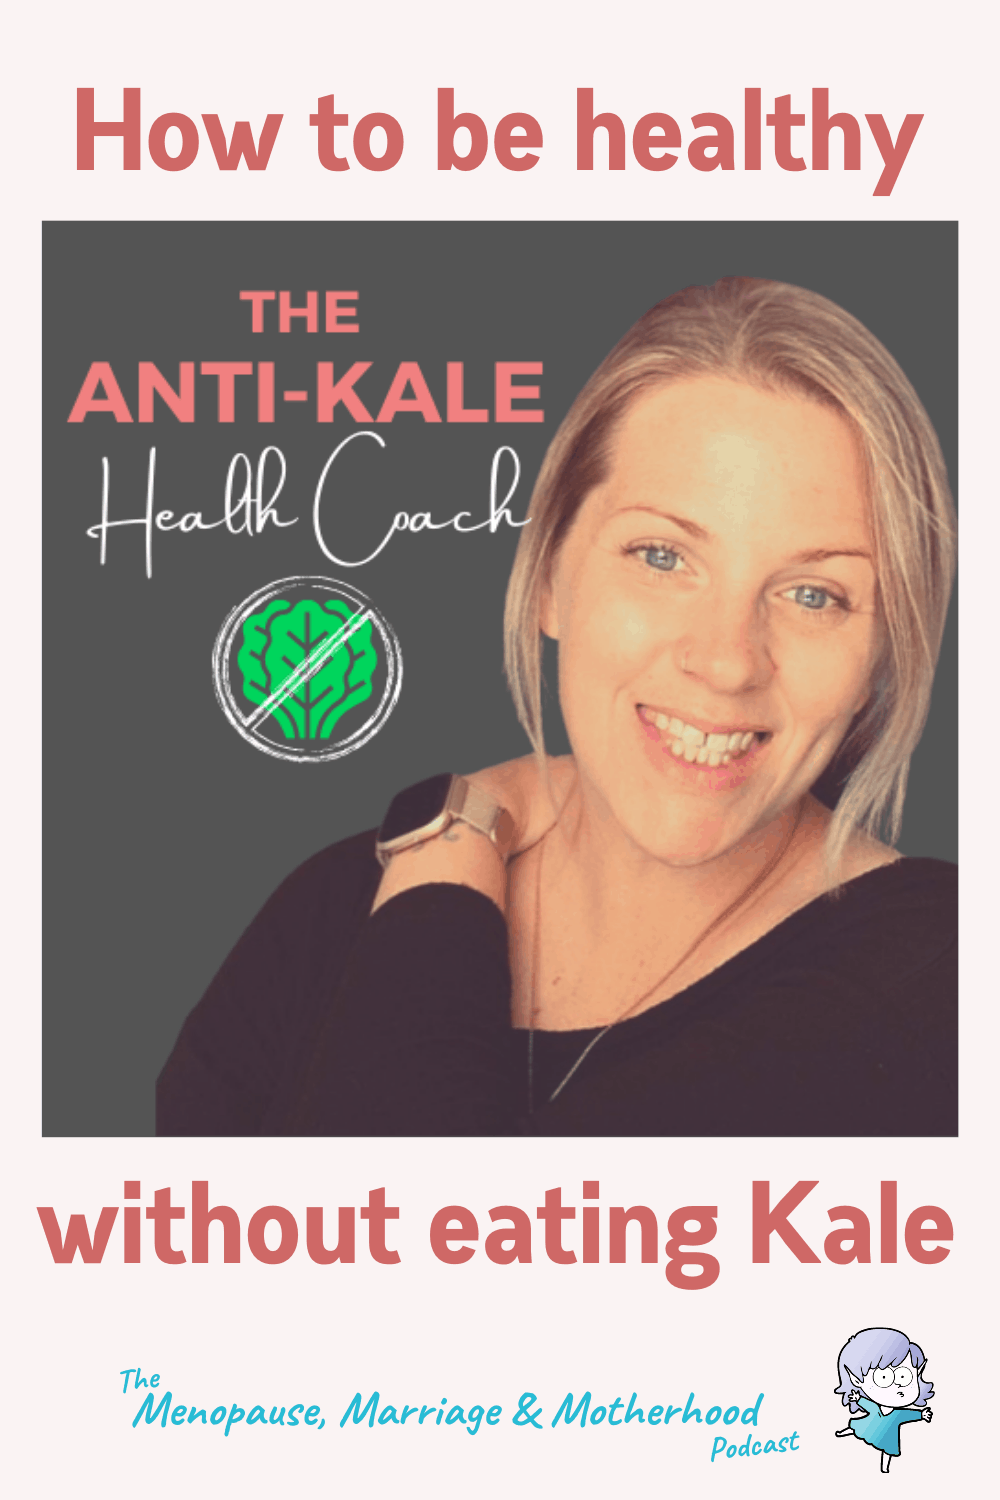 How to be healthy without eating kale with Kerri Robertson